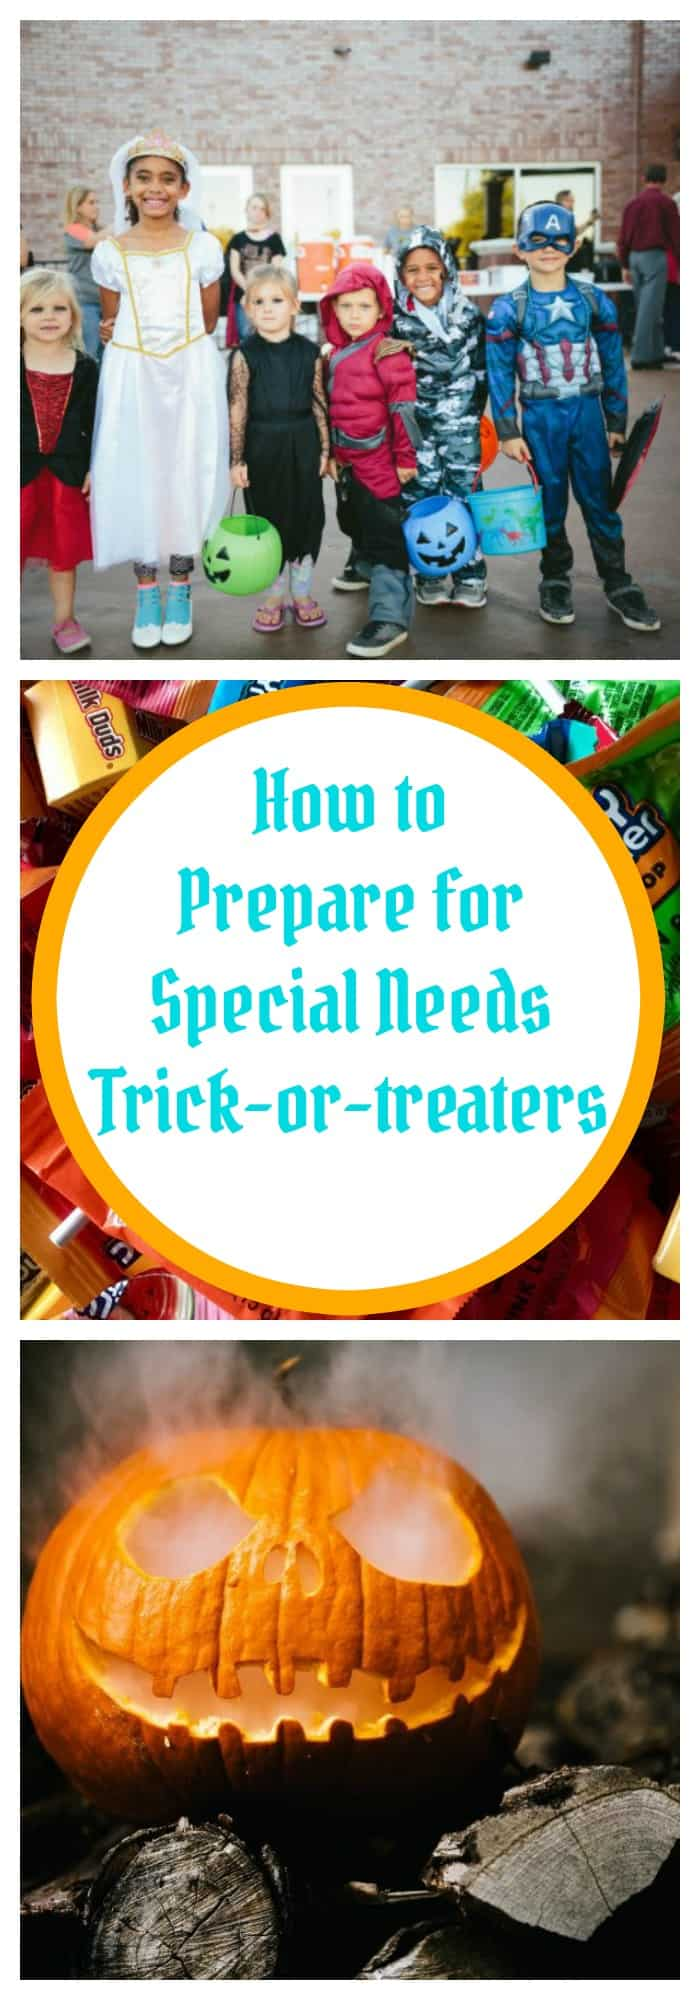 How to Prepare for Special Needs Trick or Treaters